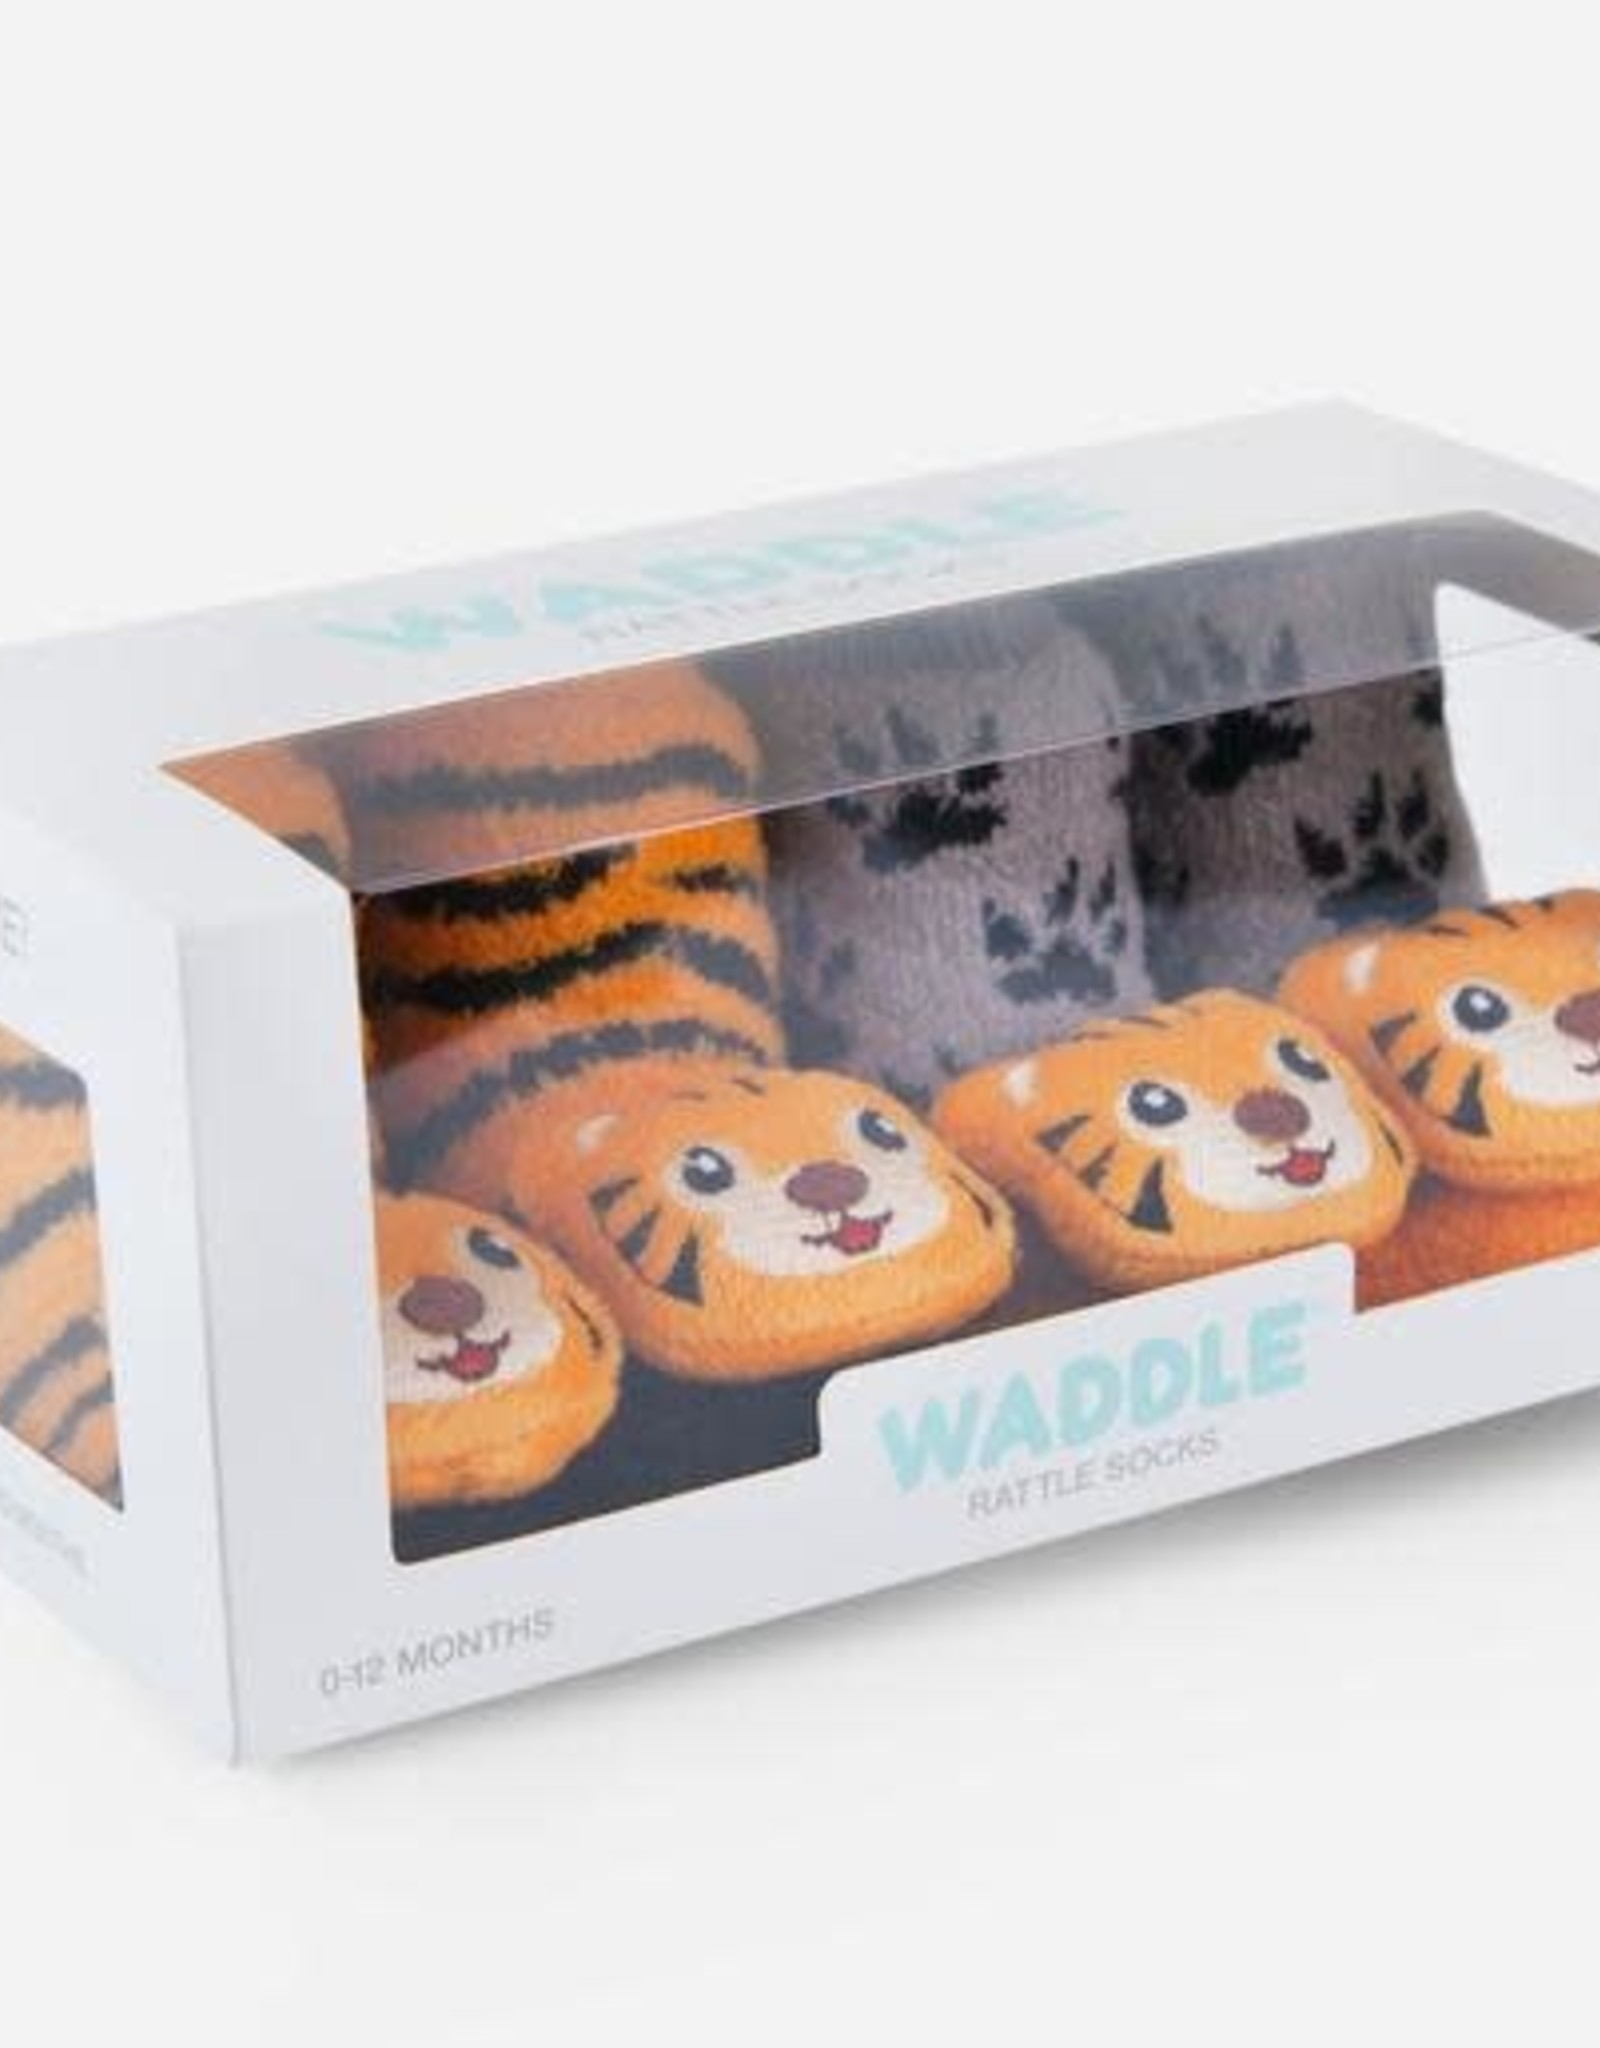 Waddle Tiger Rattle Socks